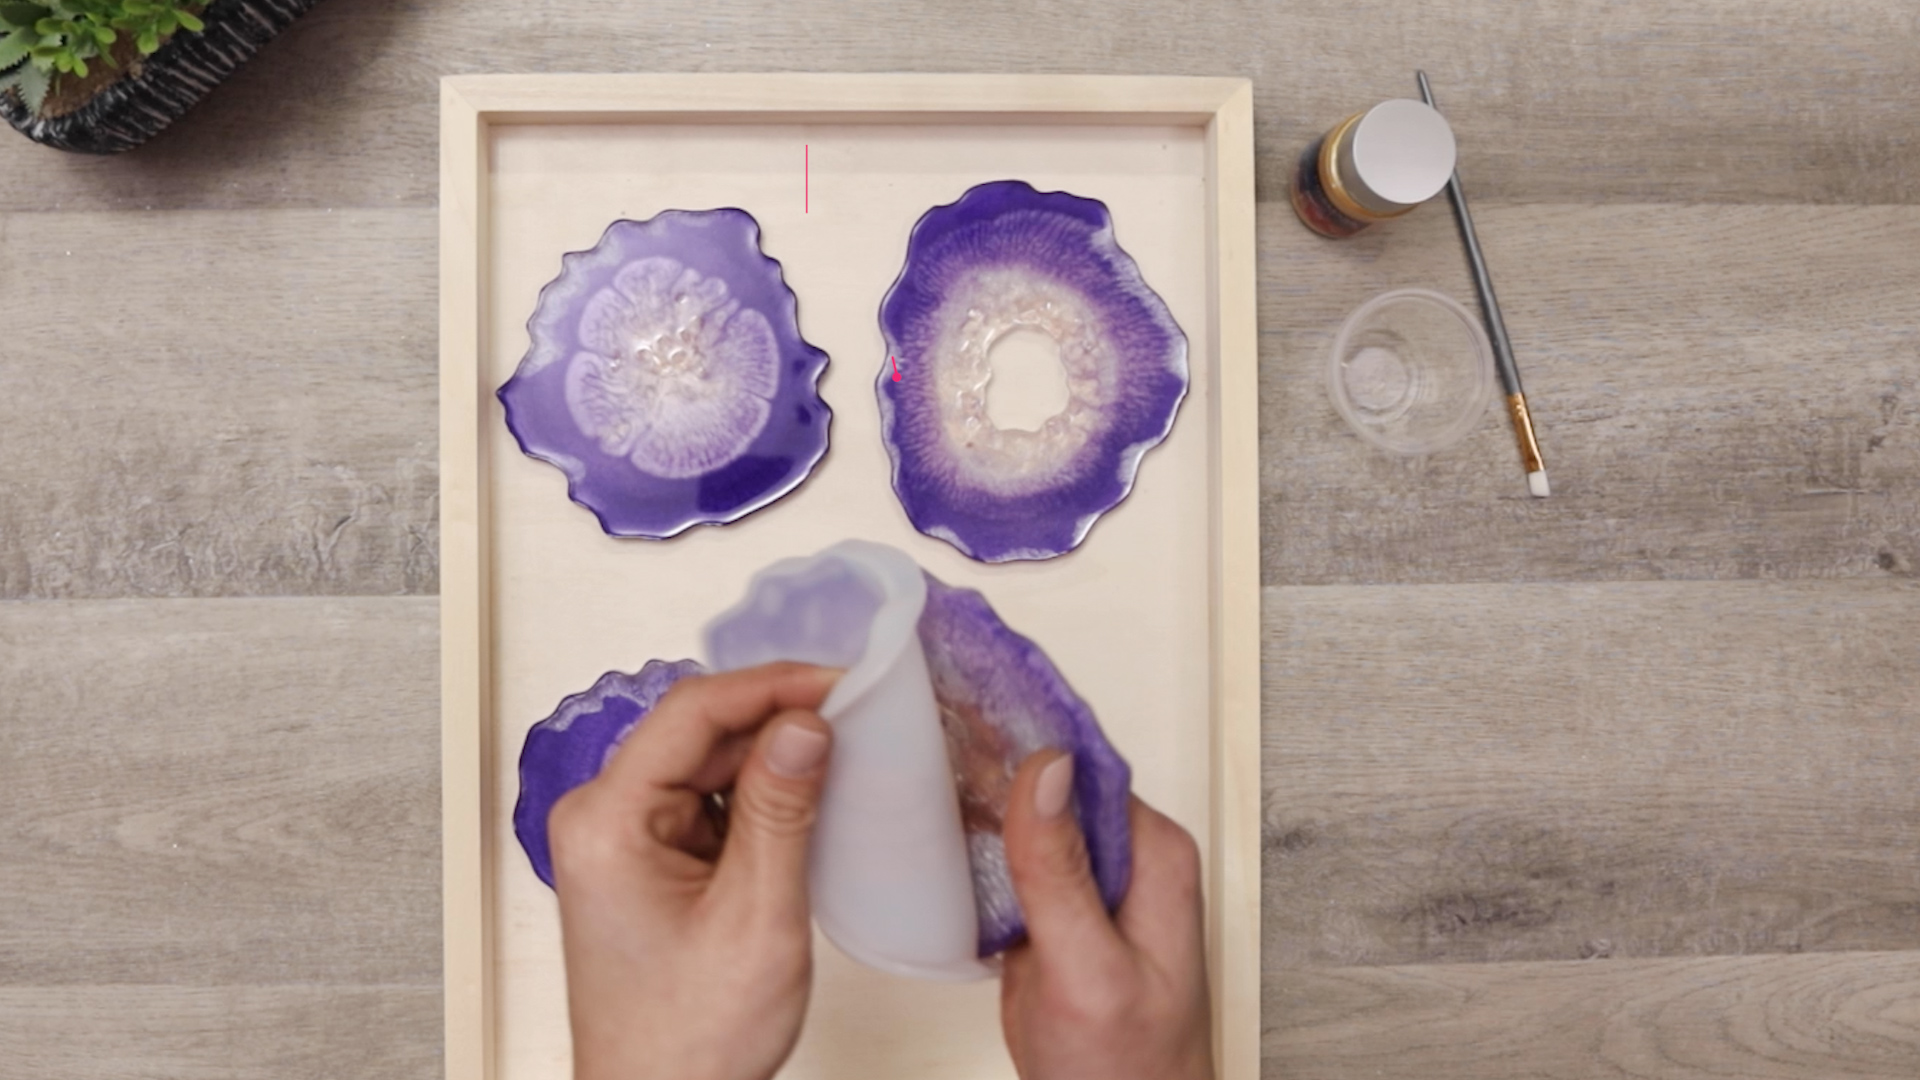 popping coasters out of resin molds